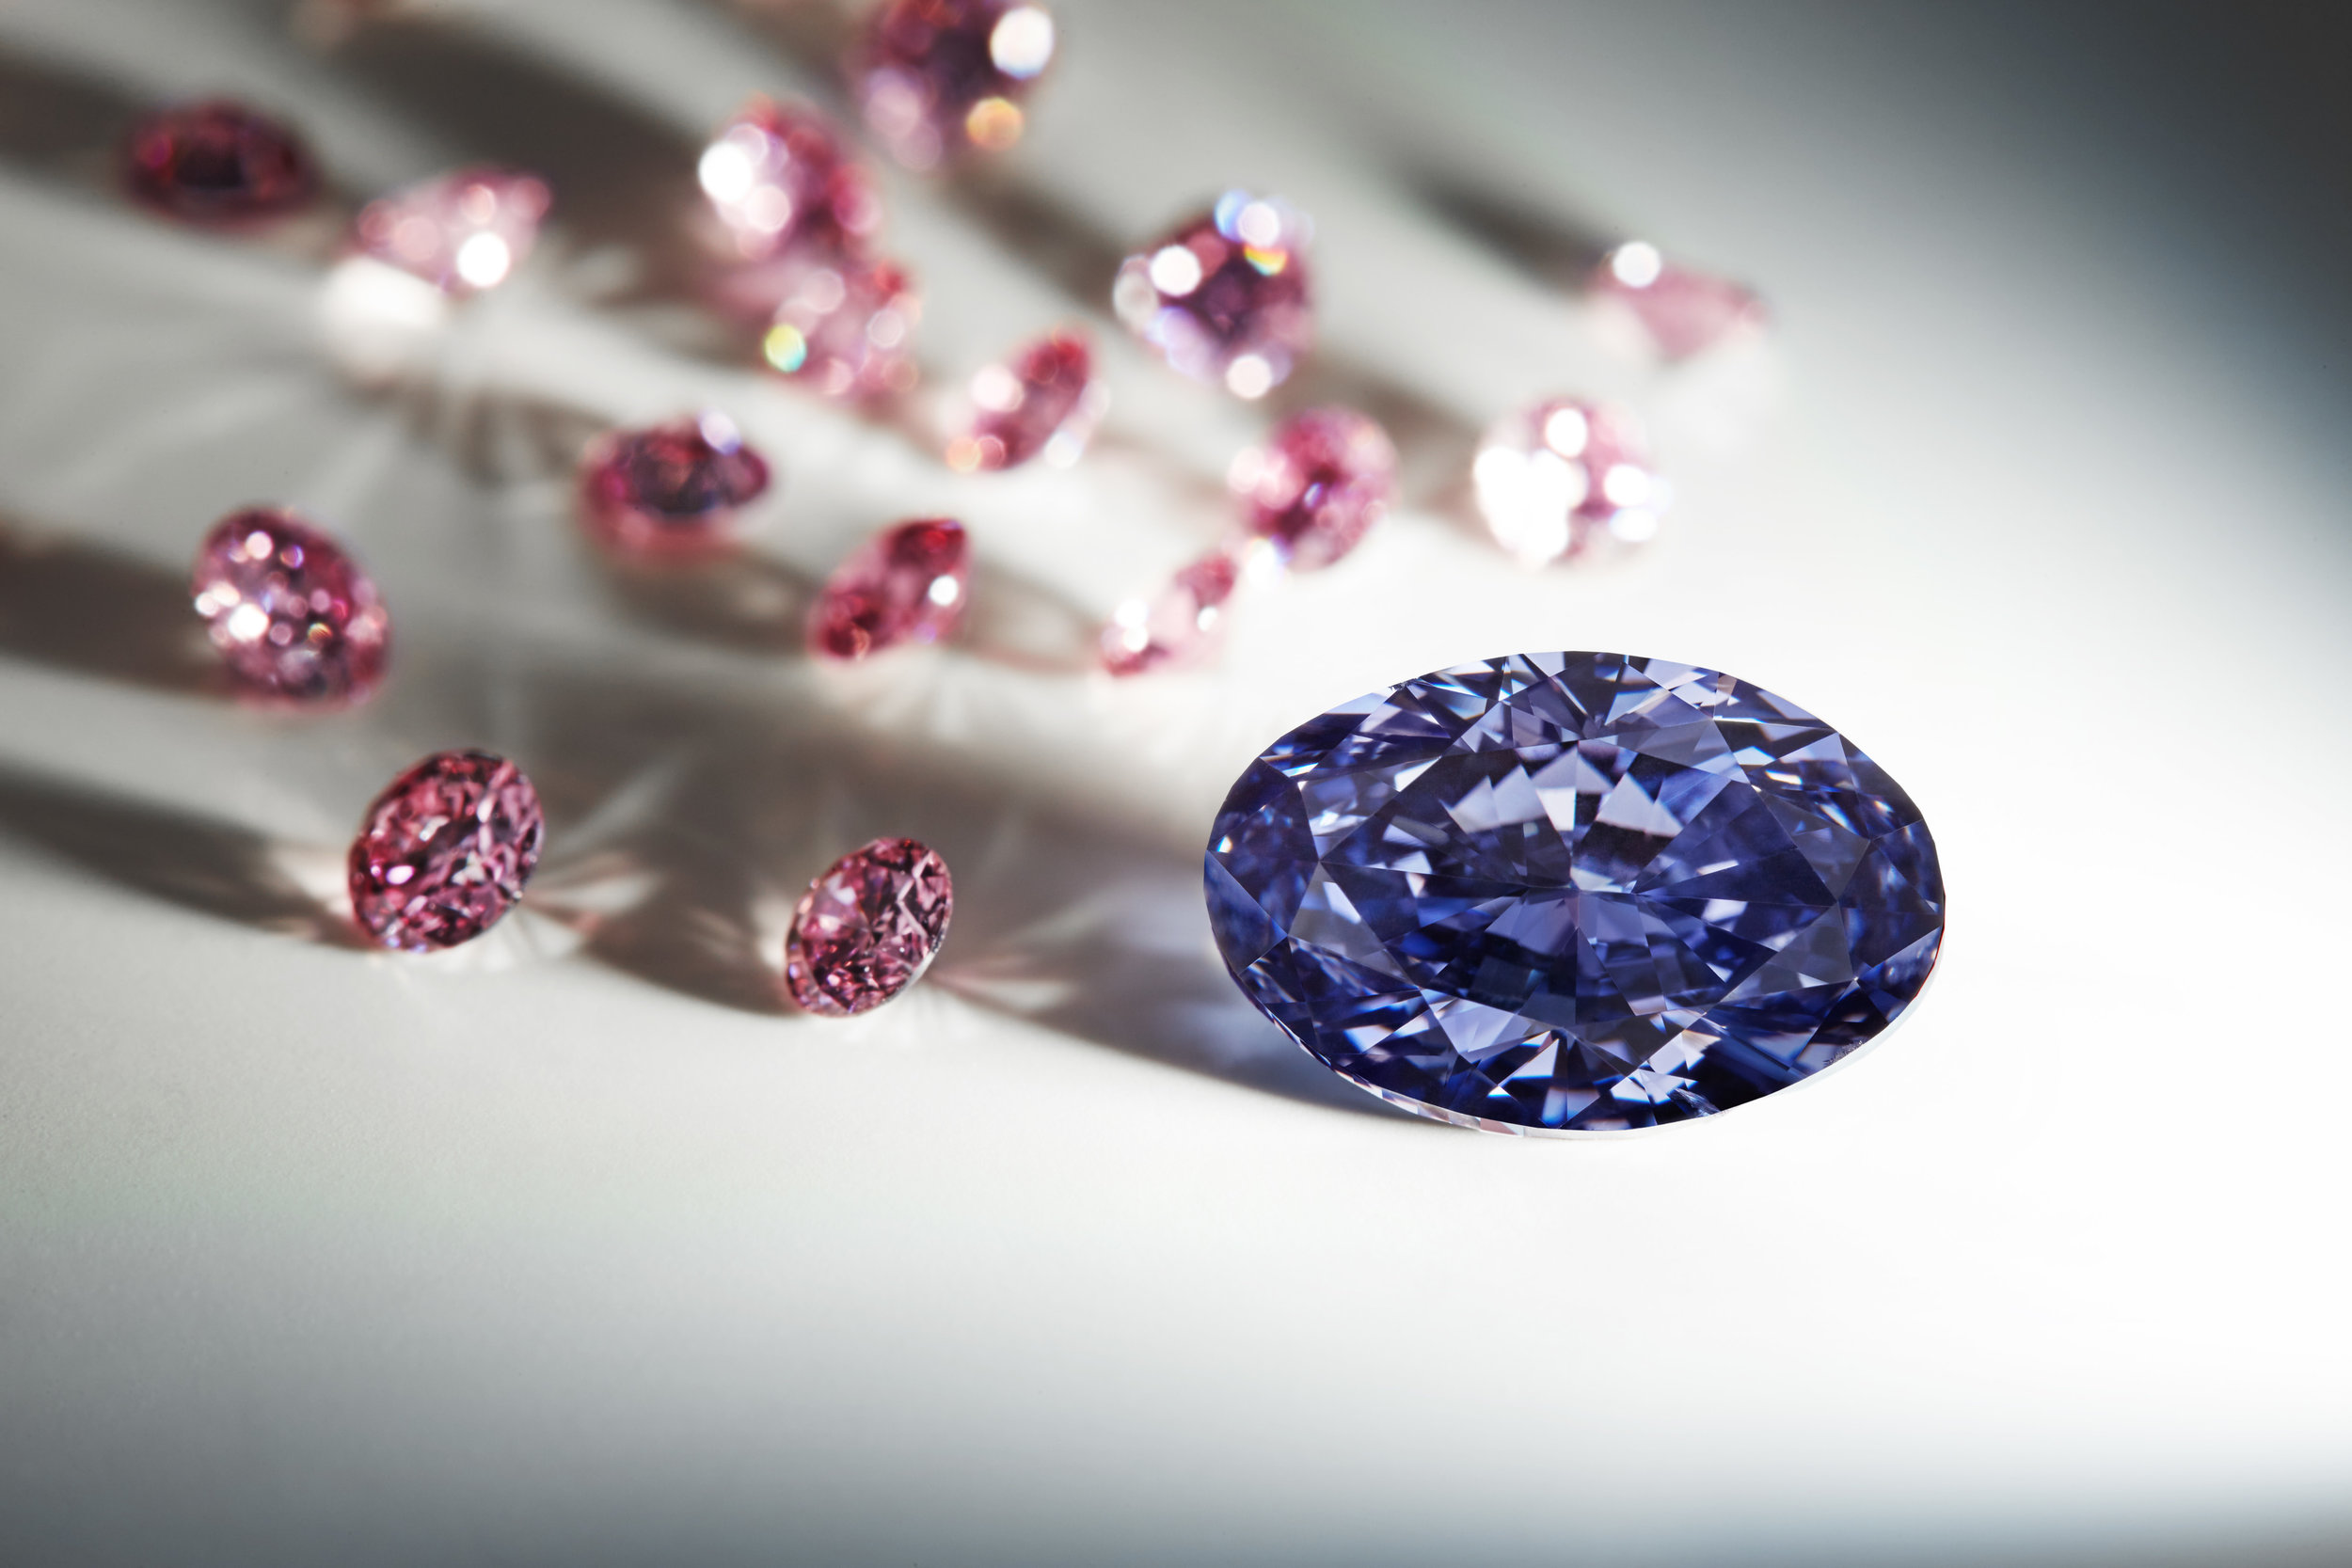 The 2.83 carat Argyle Violet diamond, an impossibly rare gem and the largest violet to ever come from the Argyle Diamond Mine.